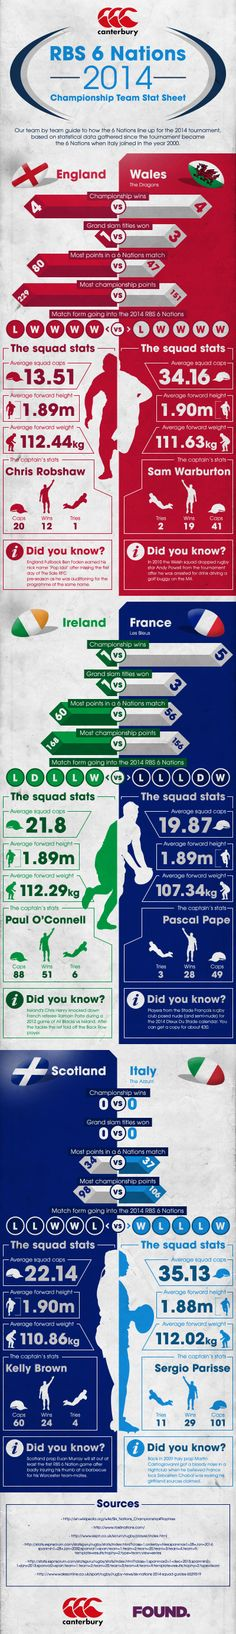 #rbs6nations 2014 Six Nations Championship Infopgraphic | Canterbury Blog